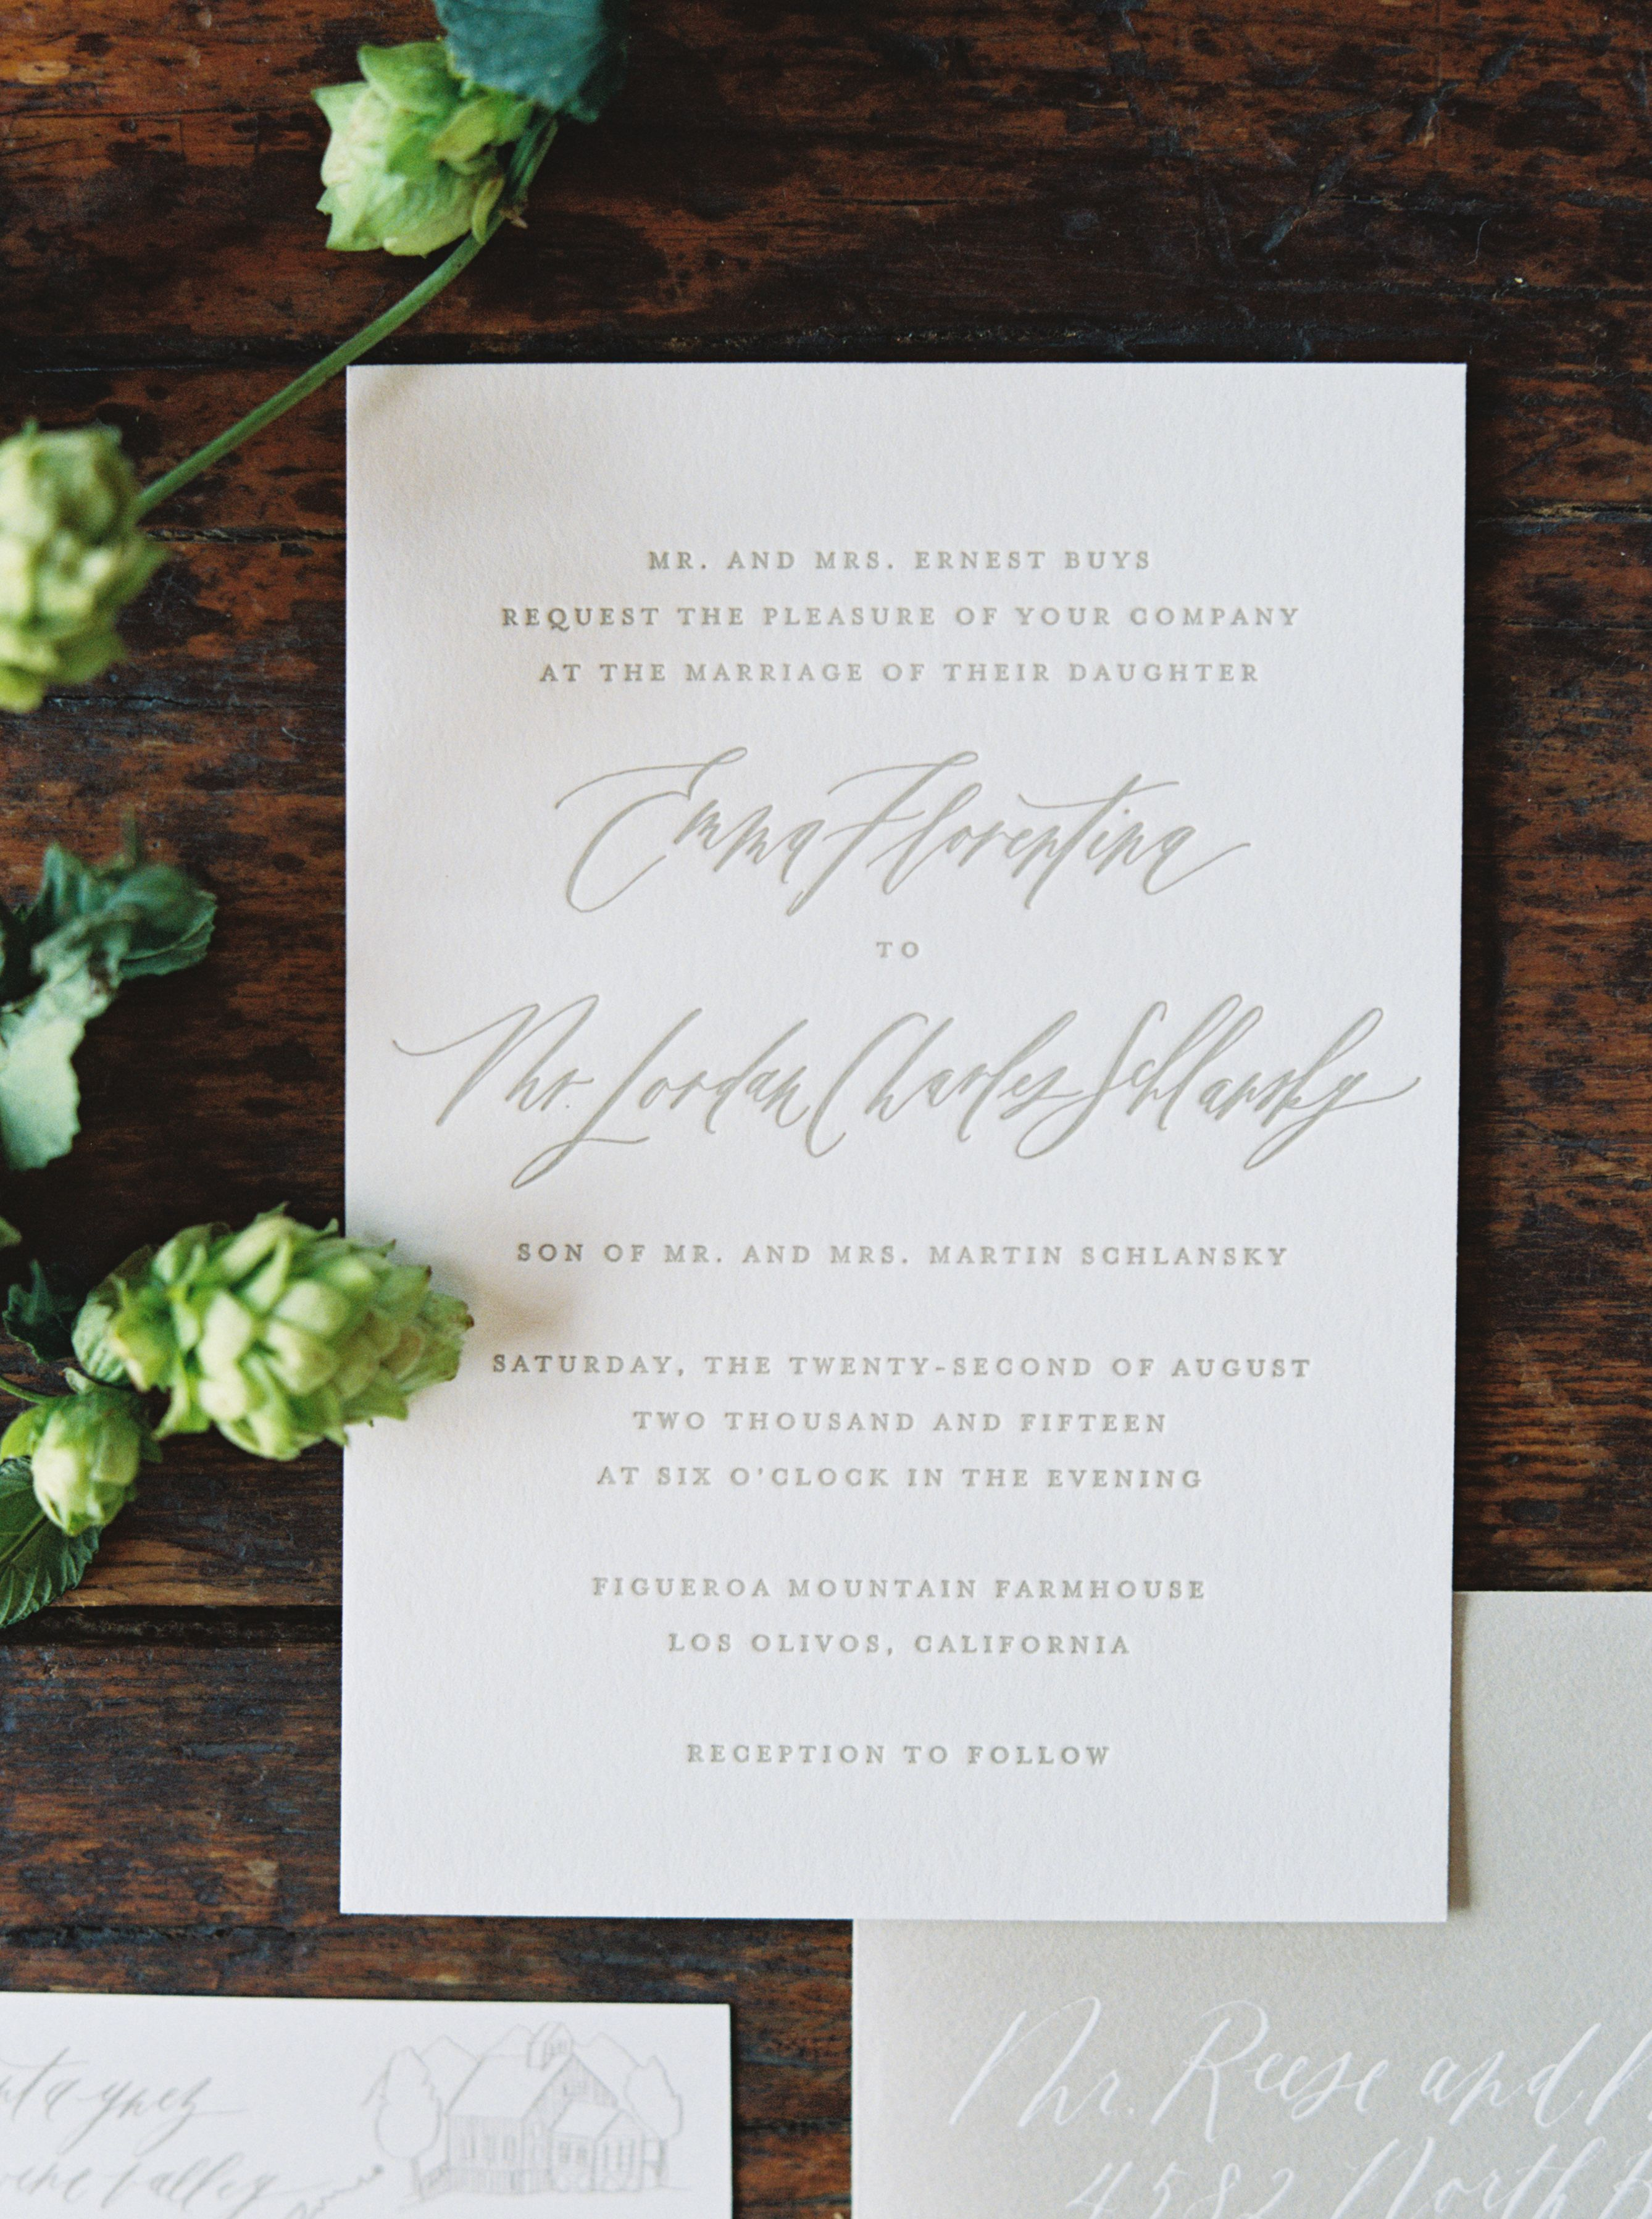 Calligraphy and Design by: Written Word Calligraphy // Erich McVey ...